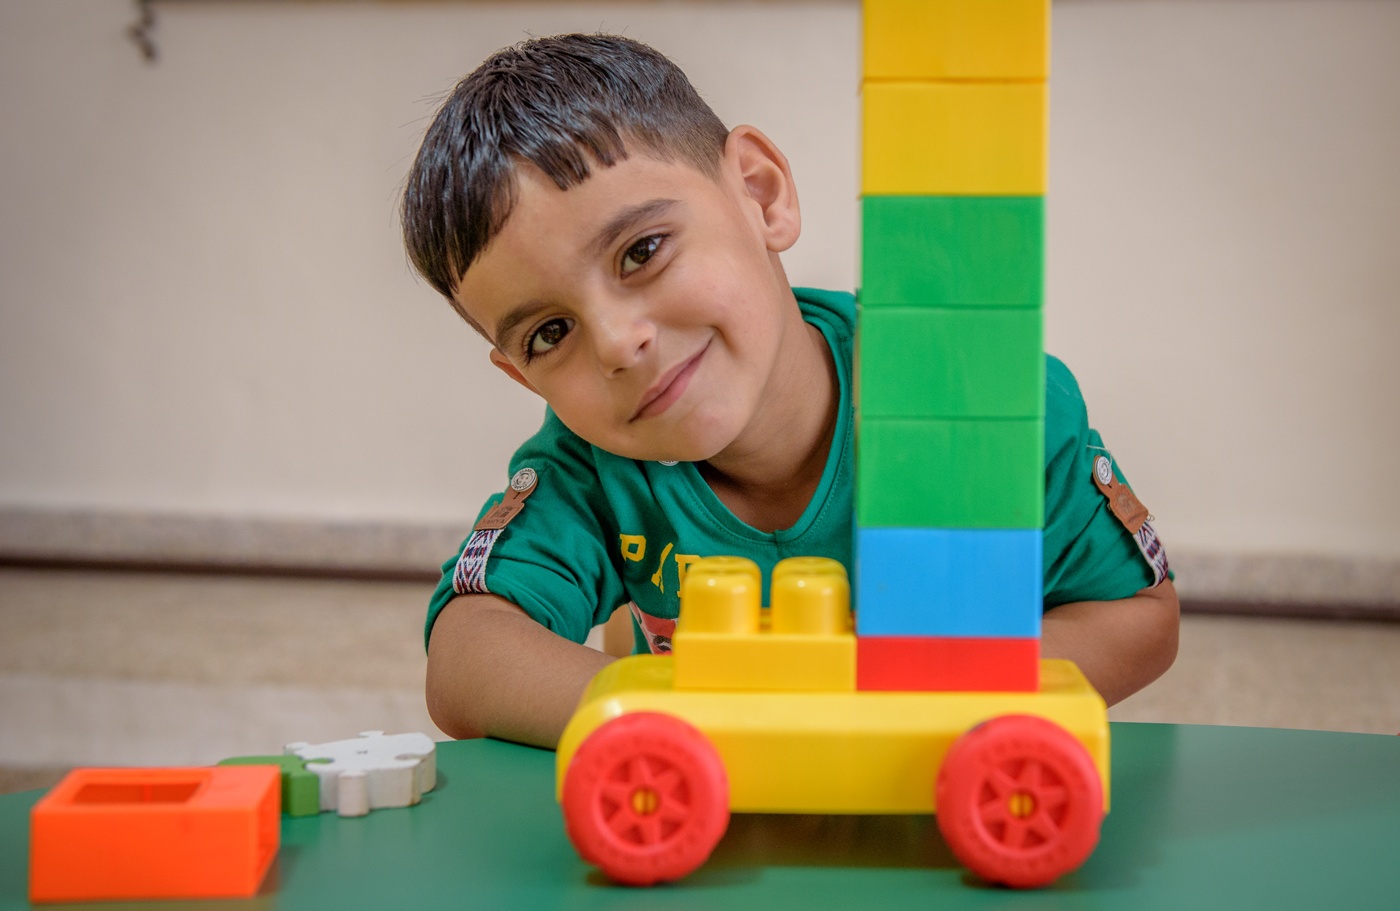 Boy playing with blocks and car